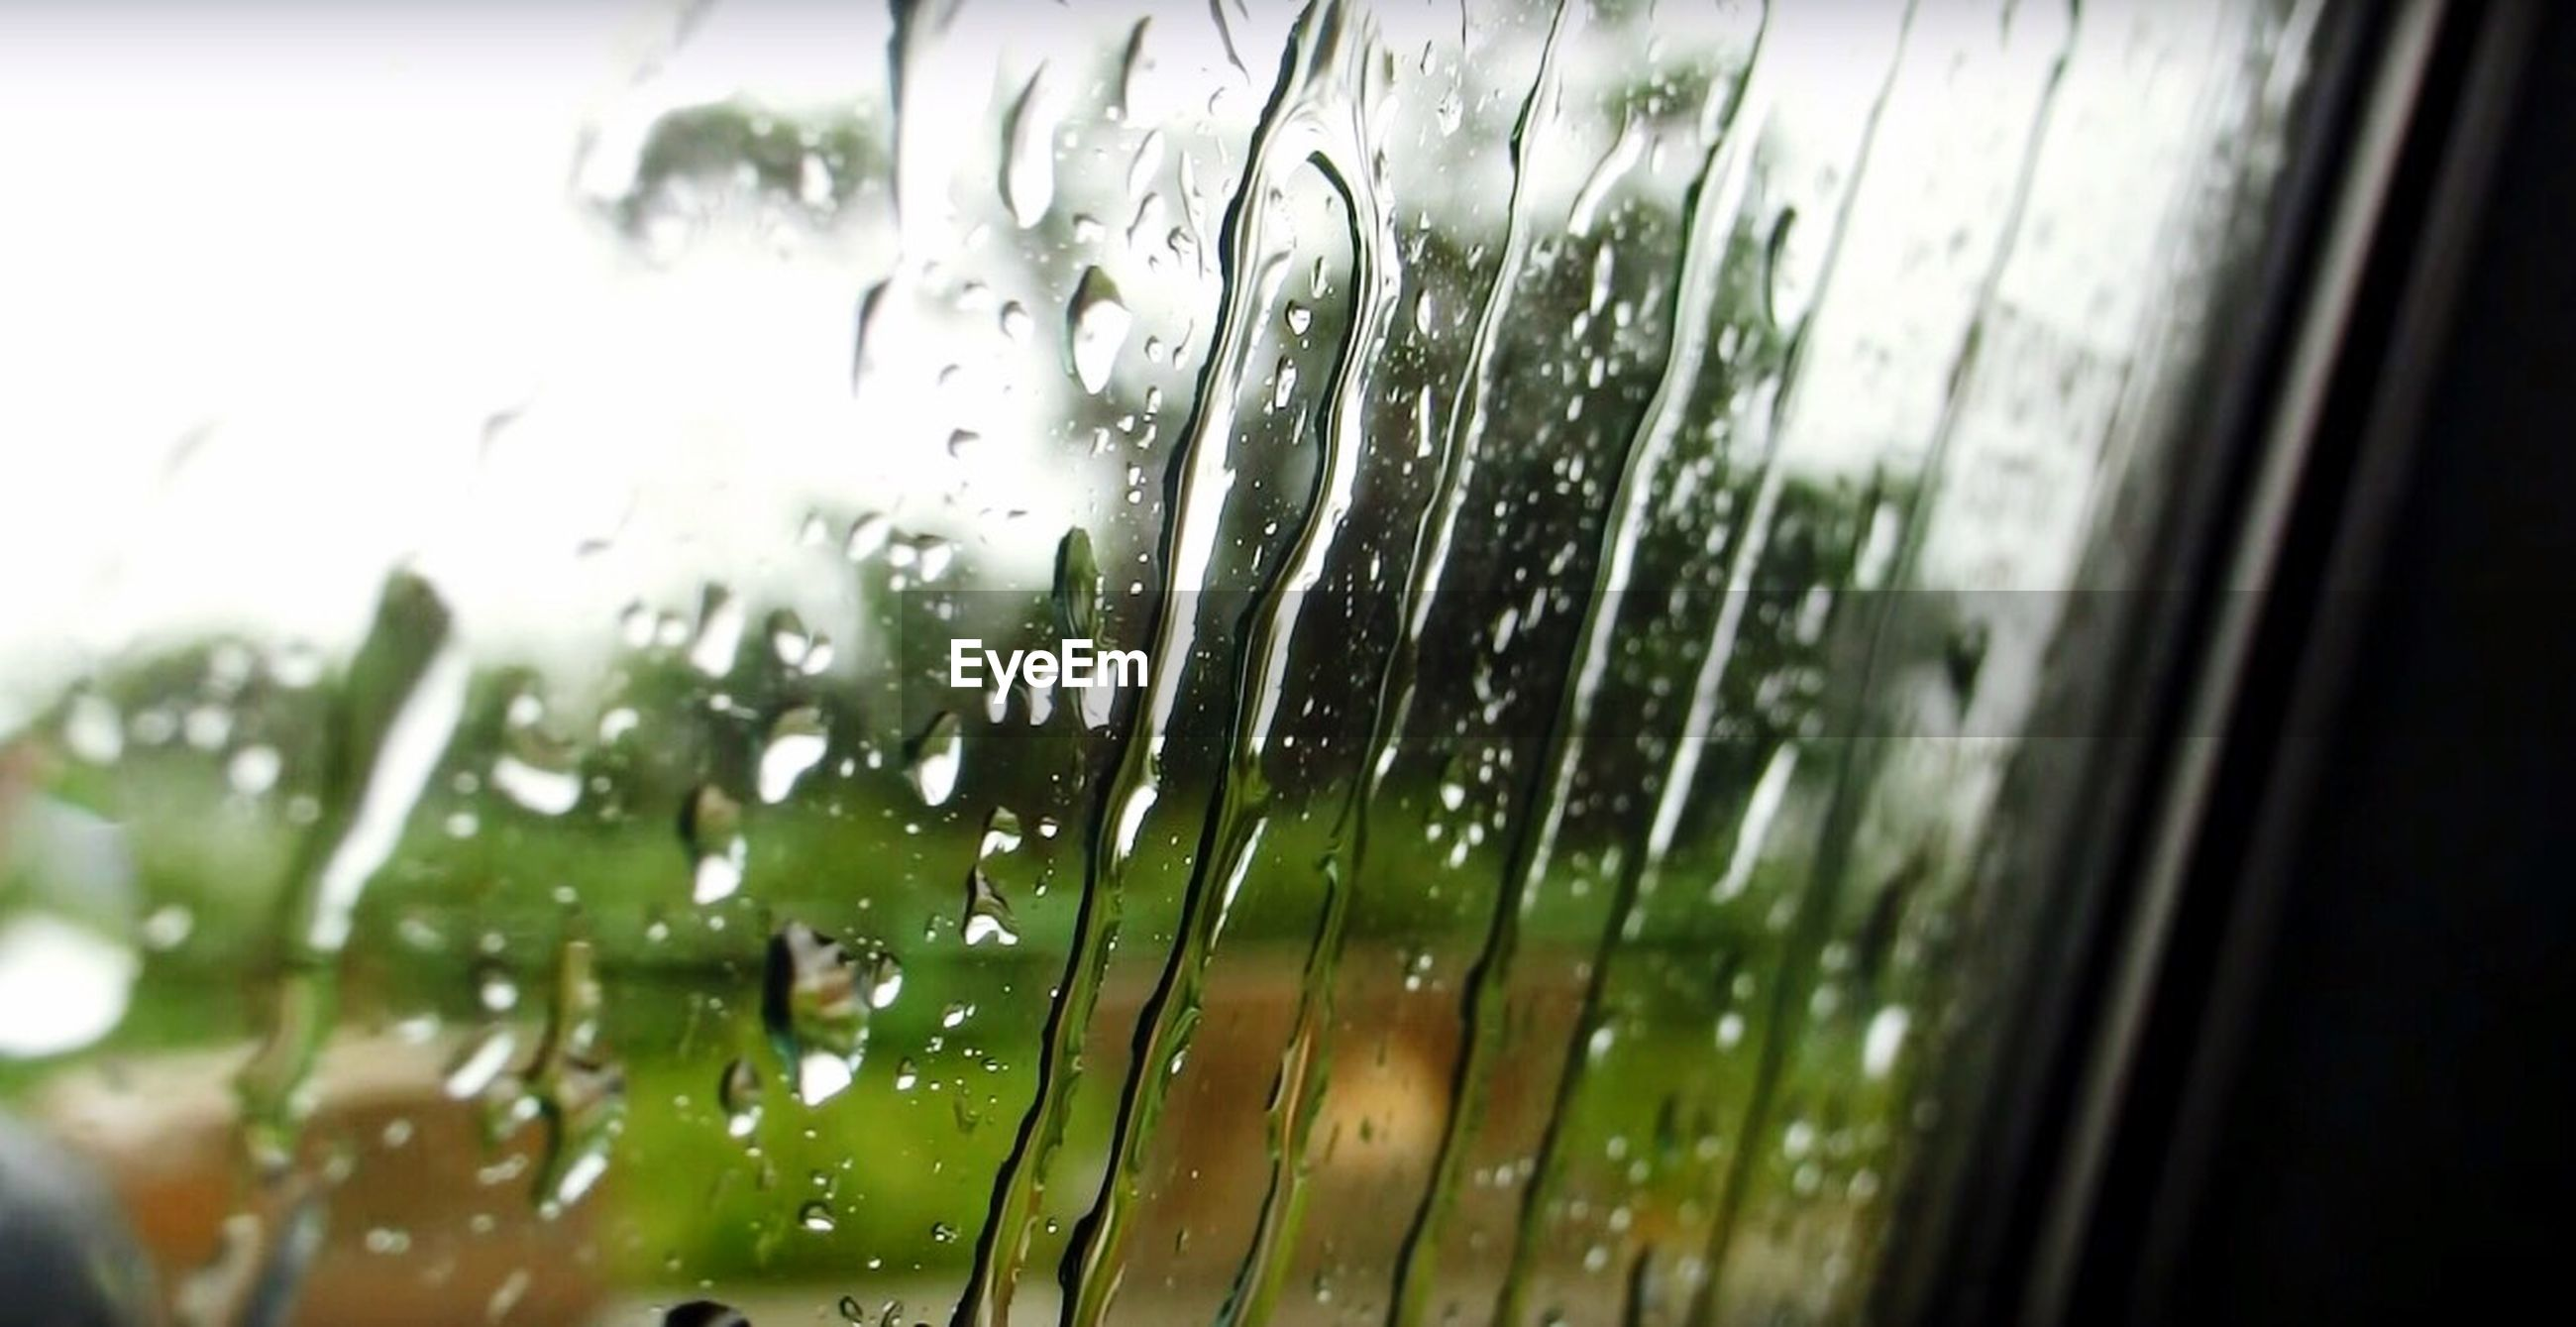 drop, wet, window, rain, water, transparent, glass - material, indoors, raindrop, focus on foreground, close-up, weather, season, car, transportation, backgrounds, monsoon, glass, vehicle interior, full frame